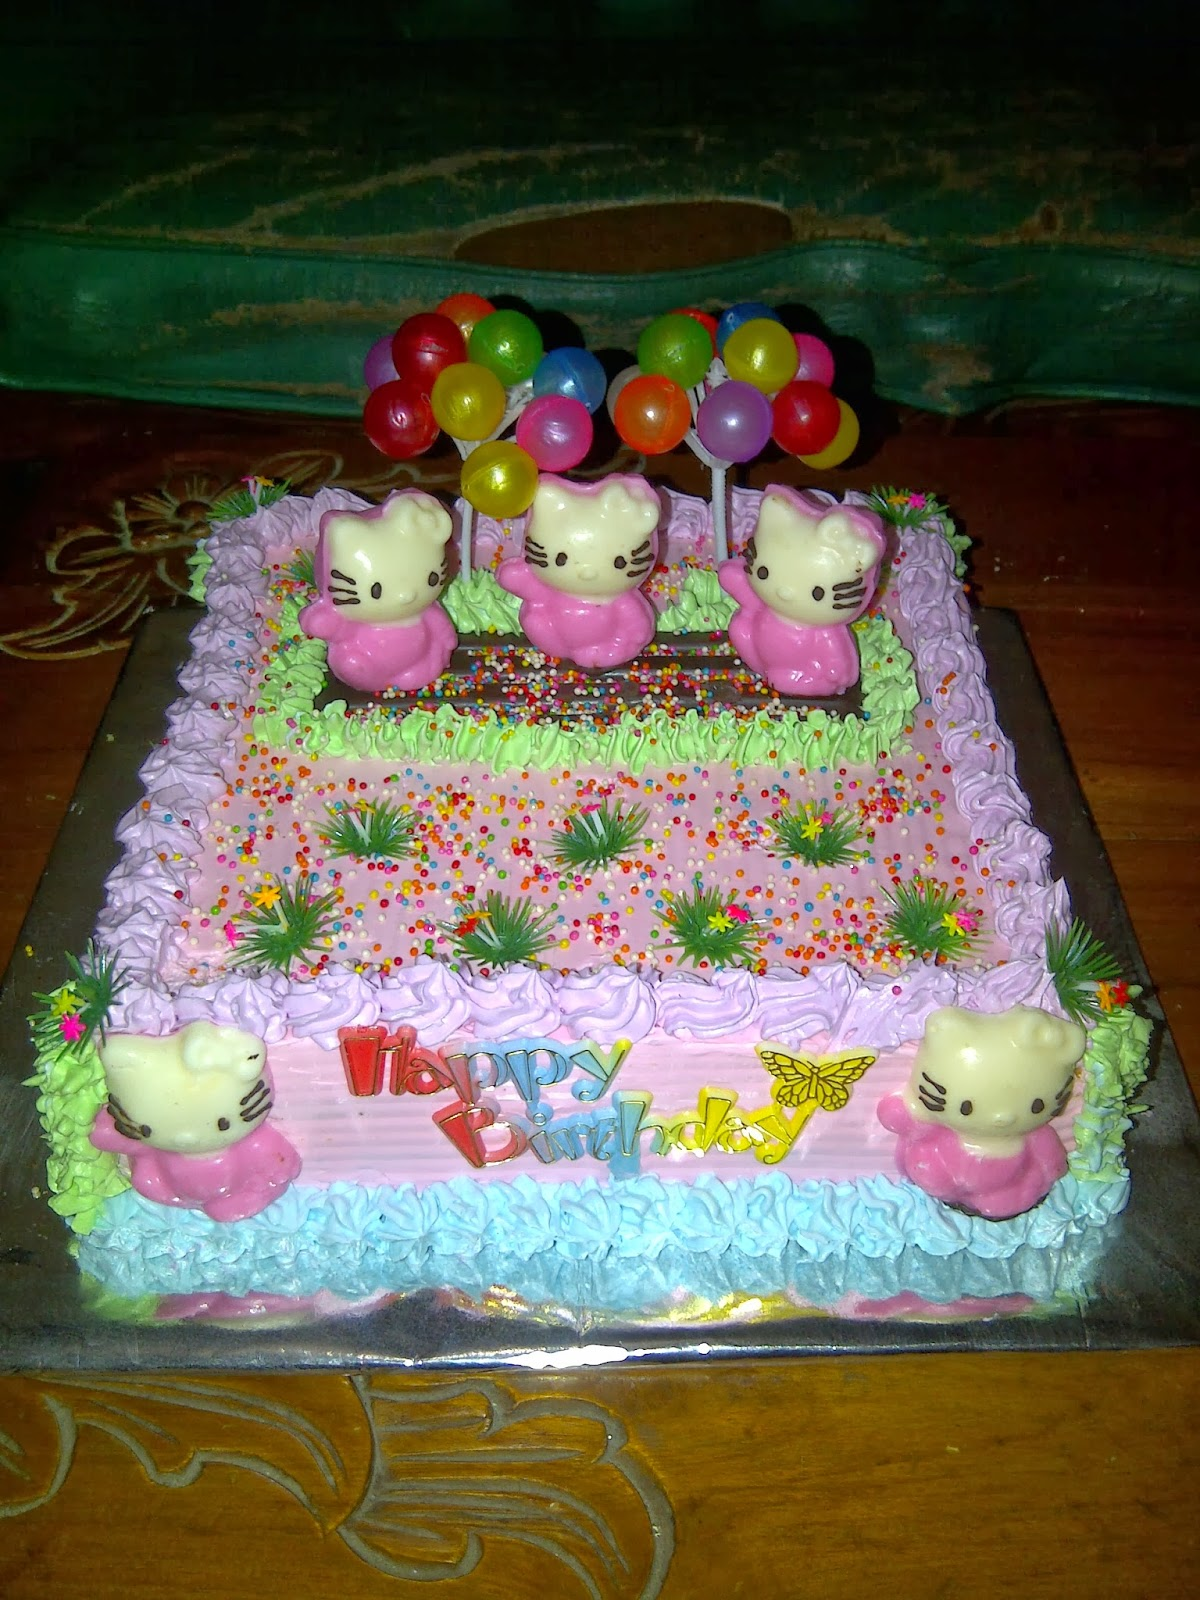 SAGITARIUS CAKE SHOP: KUE ULANG TAHUN HELLO KITTY